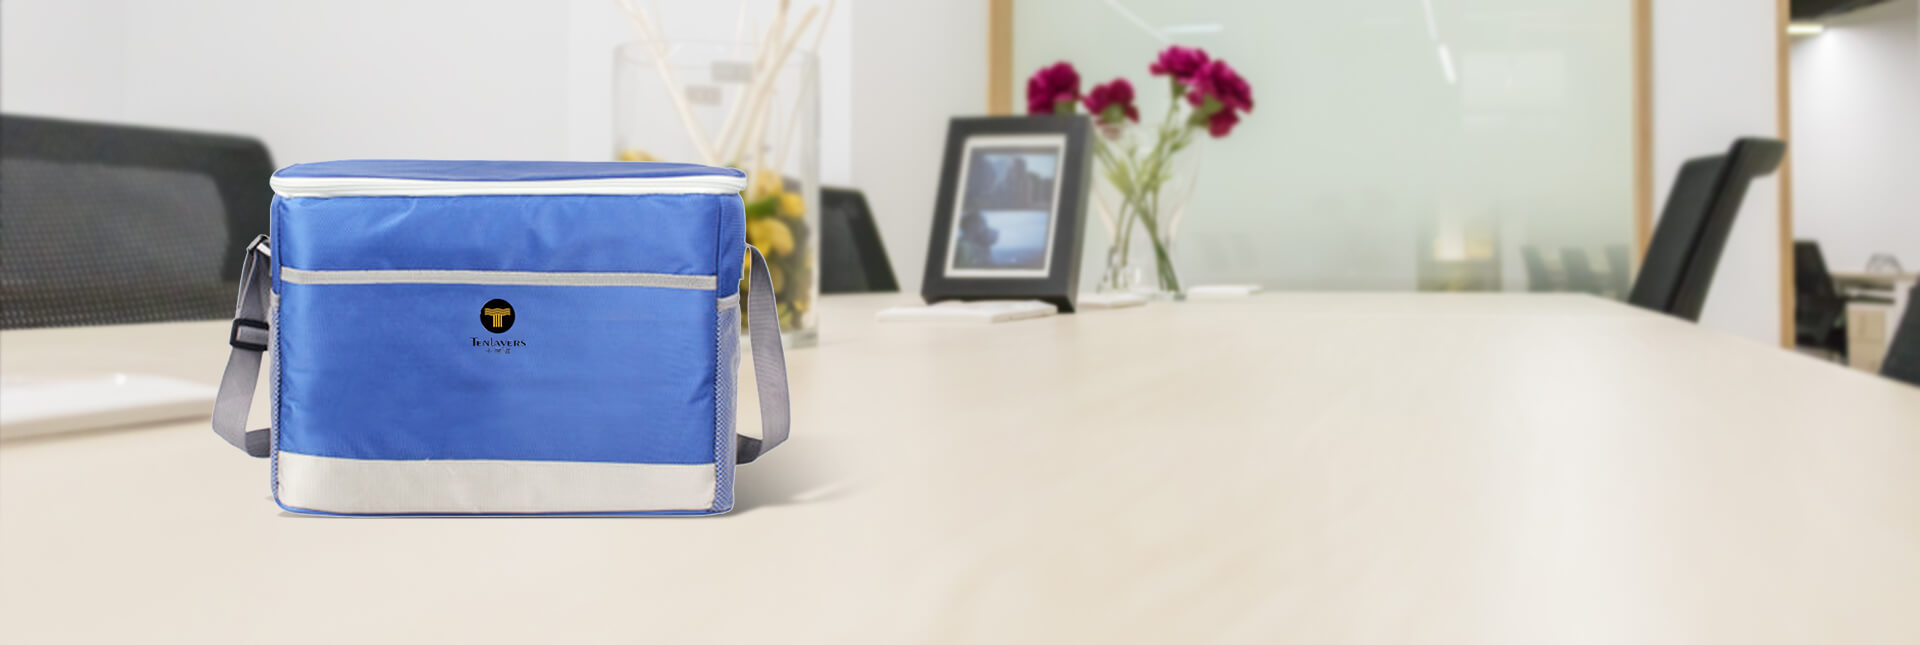 Tenlayers Hot Food Delivery Packaging Lunch Bag